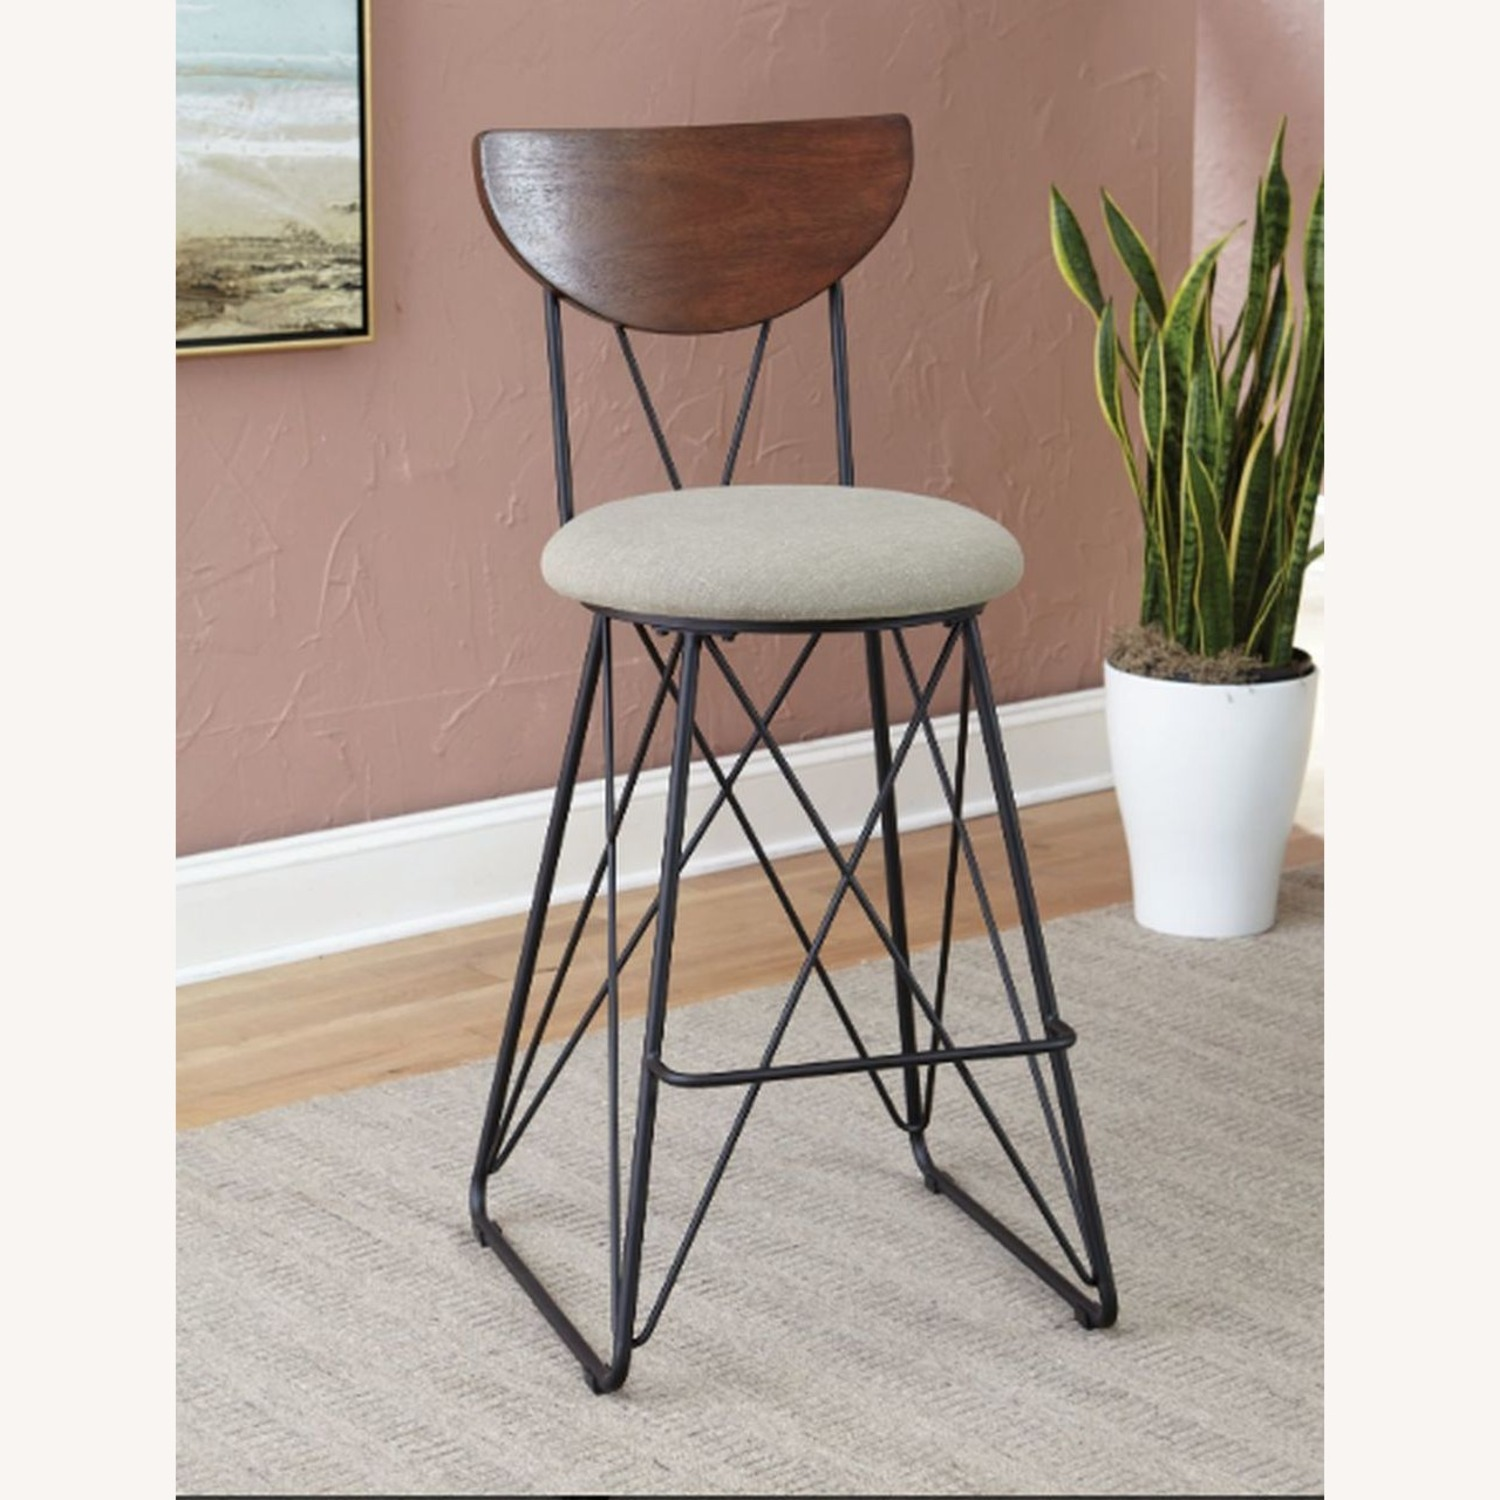 Modern Bar Stool In Linen-Like Green Fabric - image-2